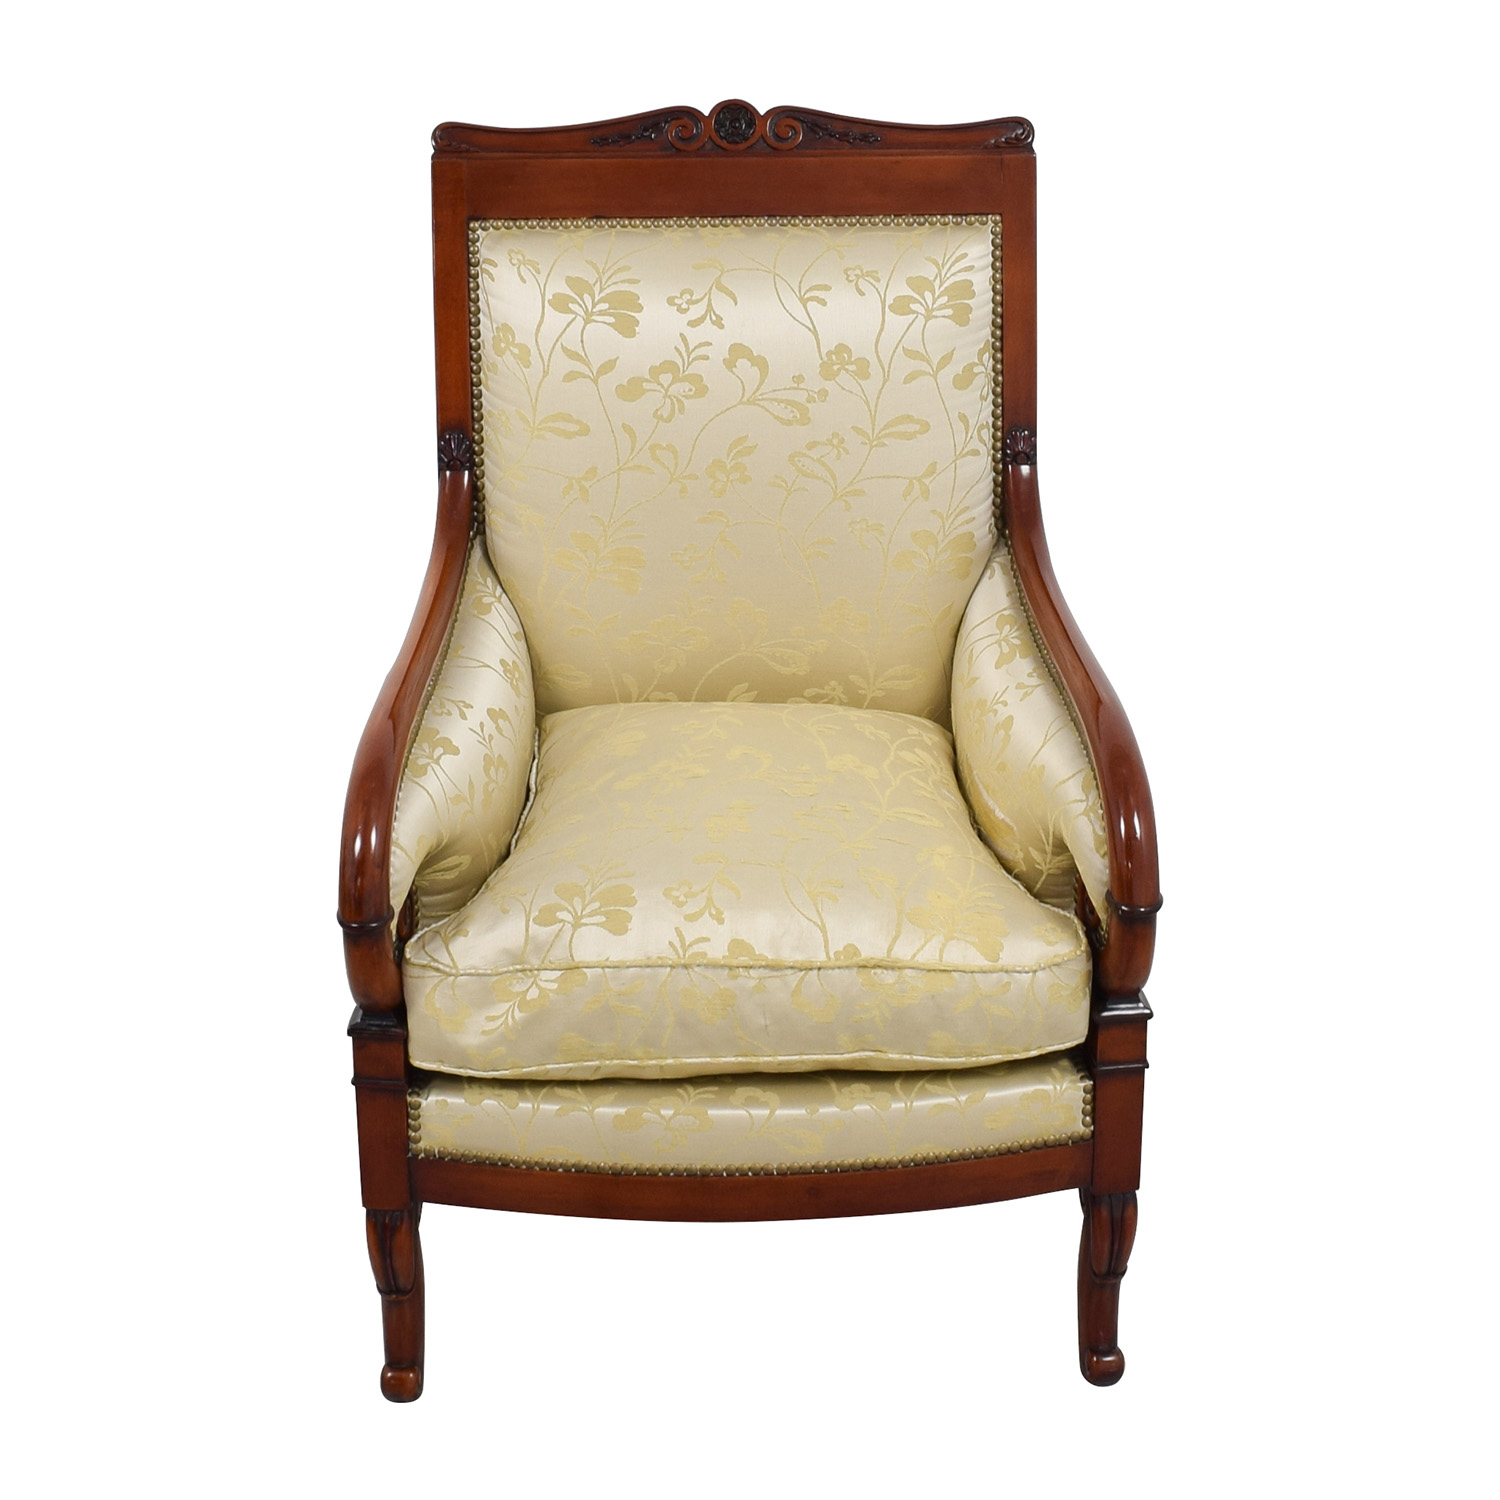 Gold Accent Chairs 90 Off Silk Damask Gold Upholstered Chair Chairs